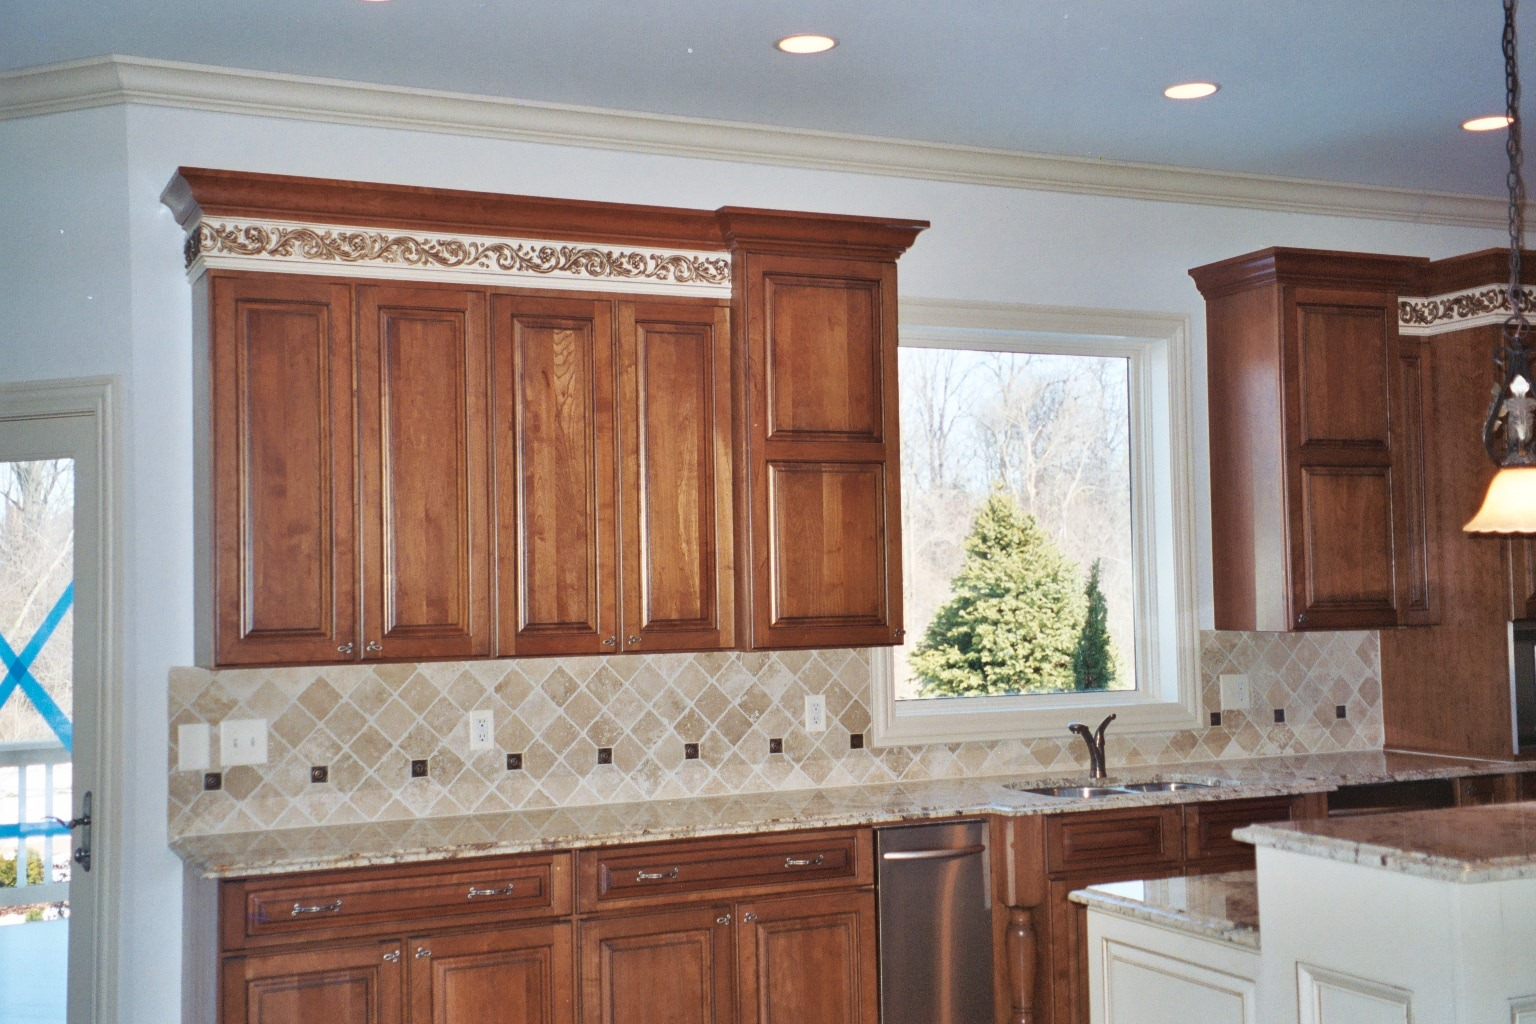 The Best Natural Stone Backsplash Tile